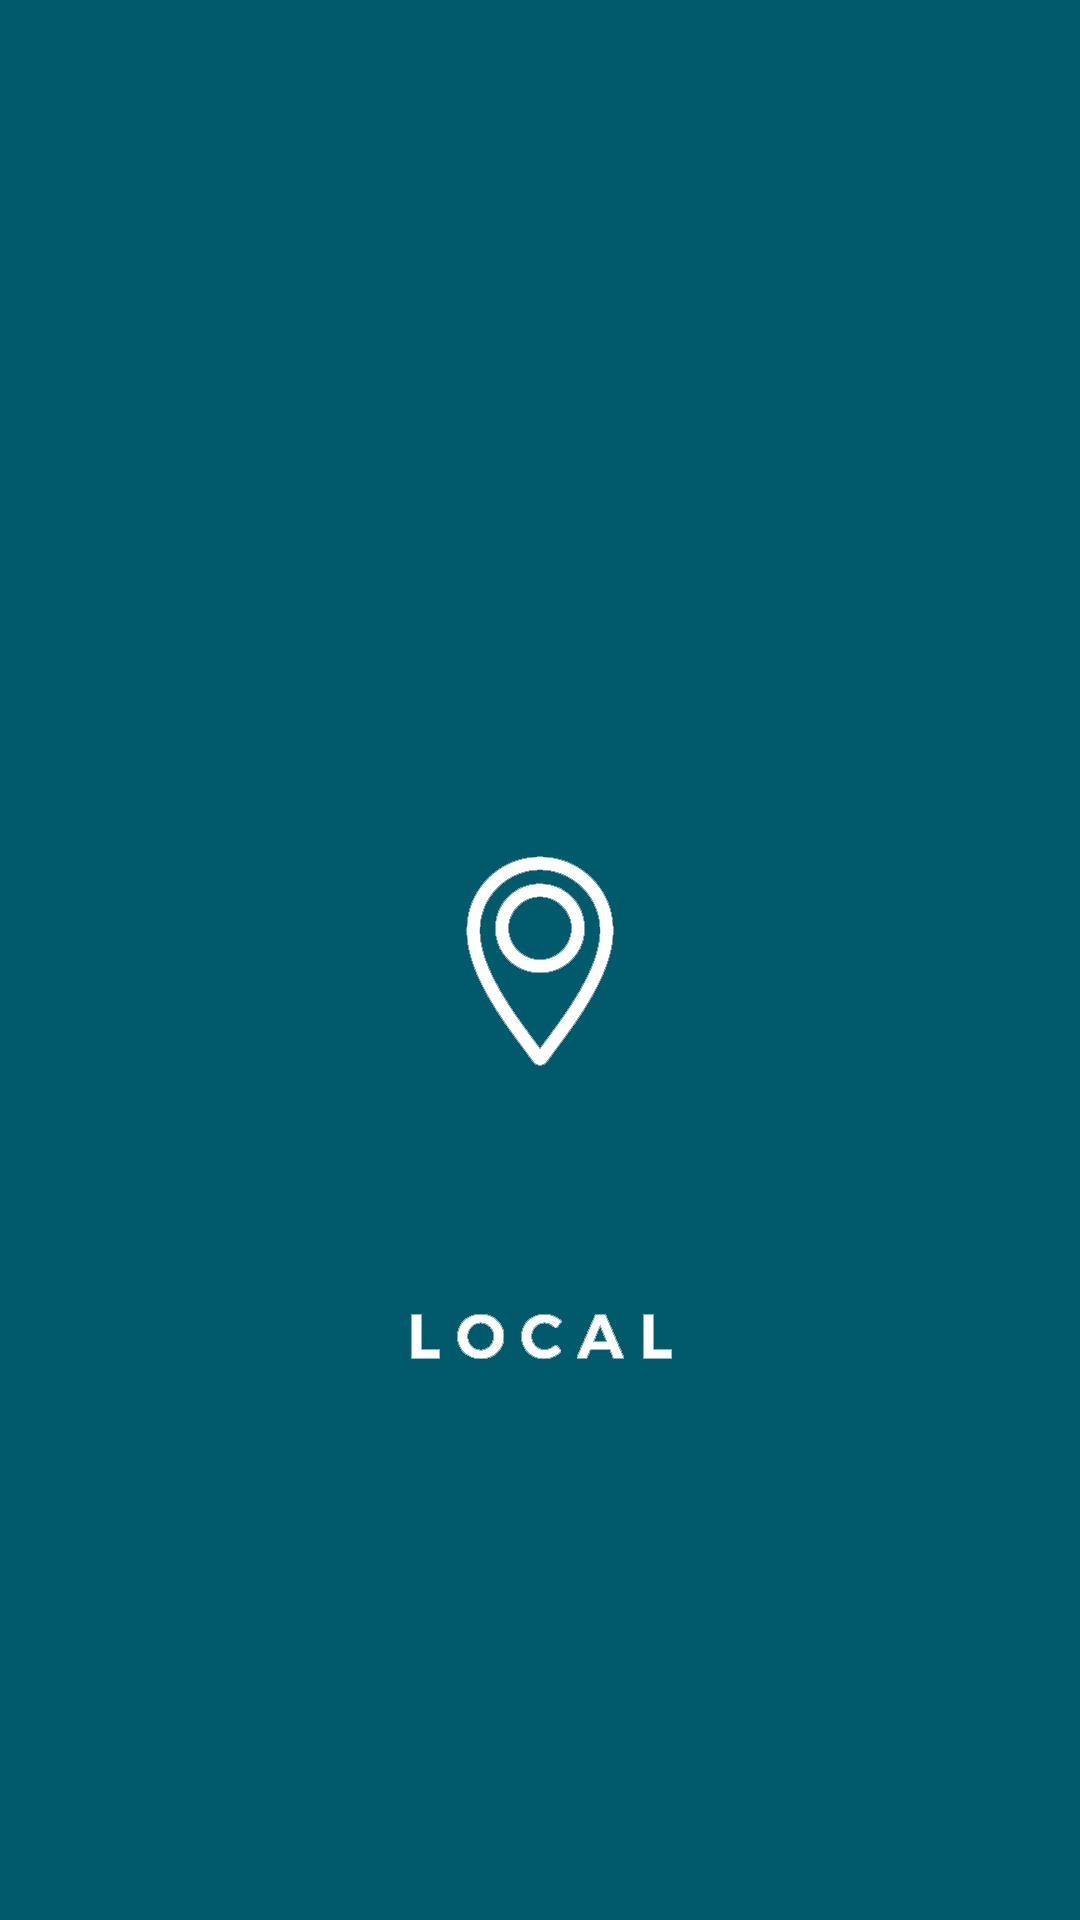 InstagramStoryCover-Local.png